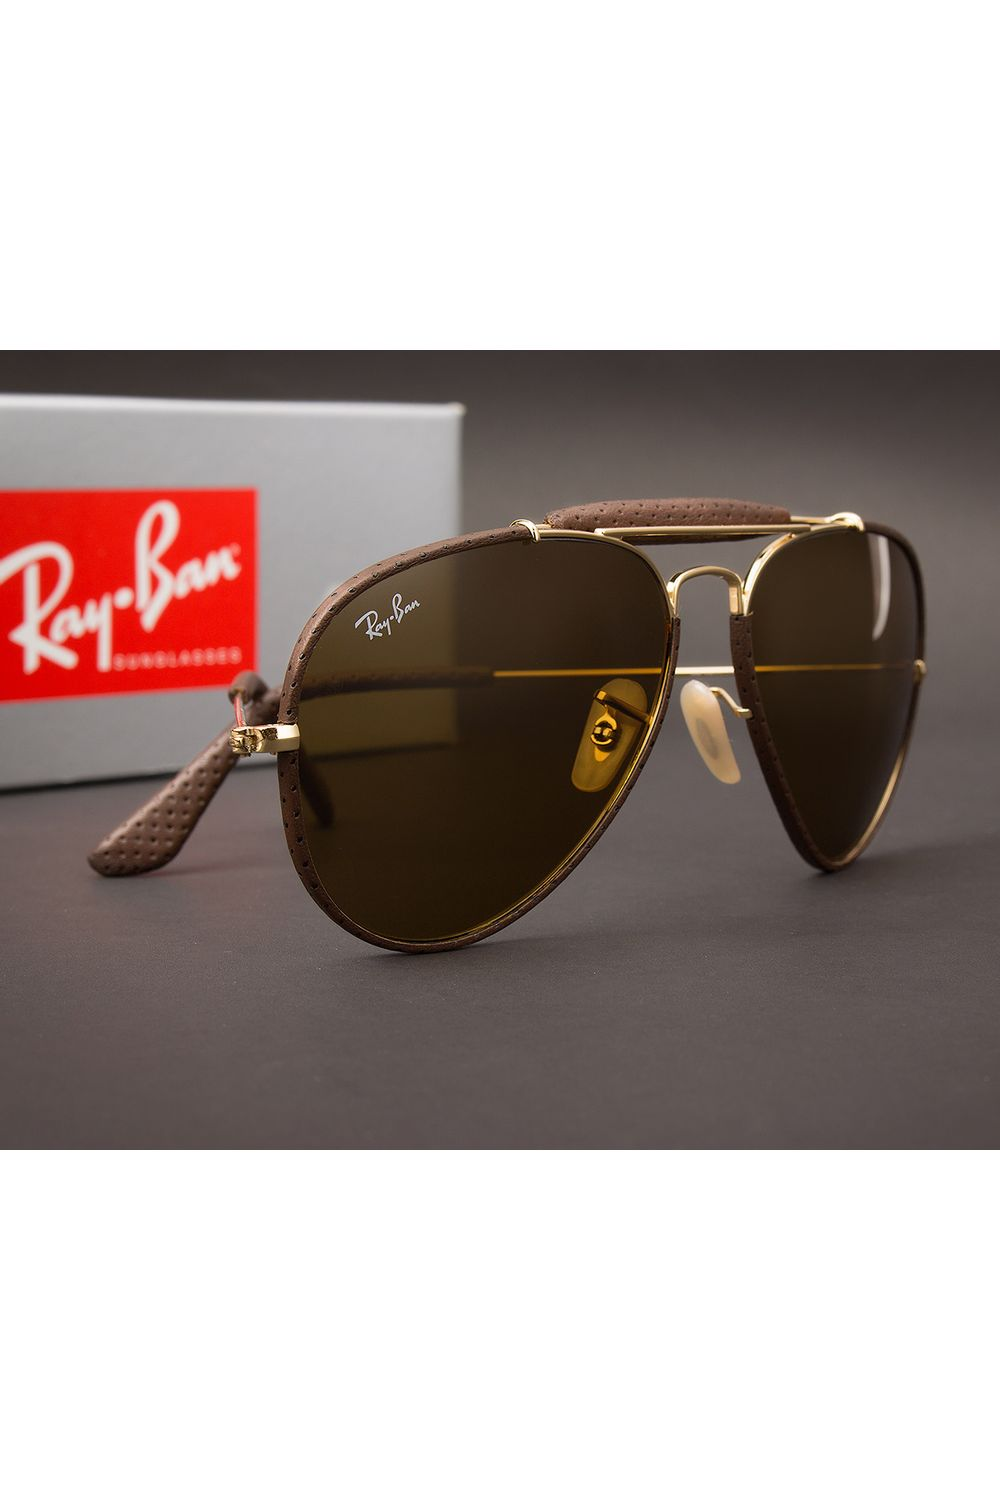 Óculos Ray Ban Ray-Ban Outdoorsman Craft RB3422Q 9041-58 - Moda it c688cc424c